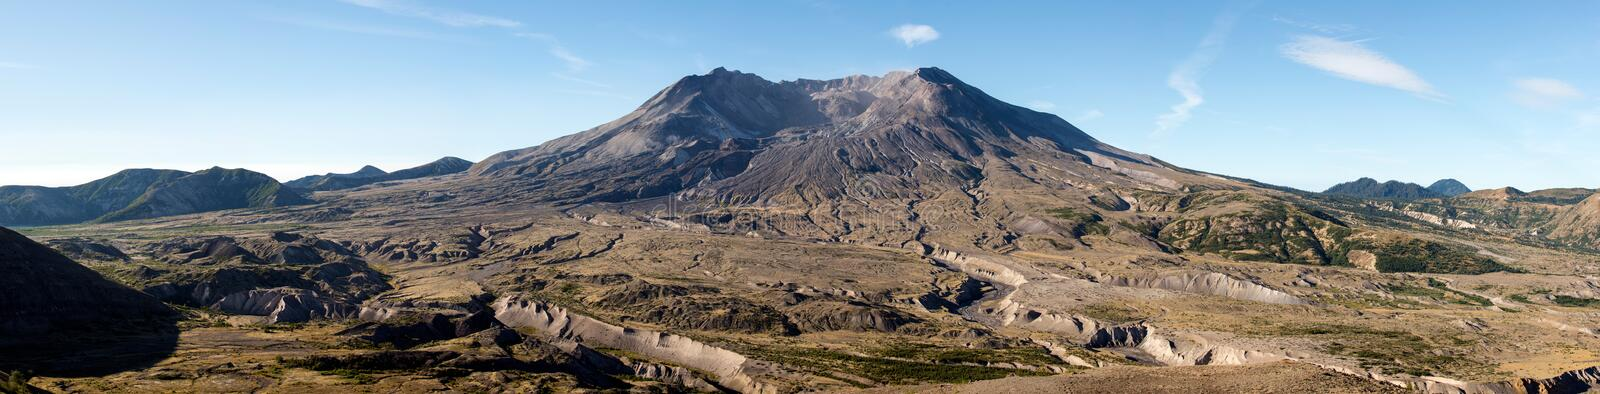 Wide blast-zone of Mount Saint Helens volcano. The blast zone of Mount Saint Helens volcano, Washington, USA, a barren and wiped out landscape stock photo